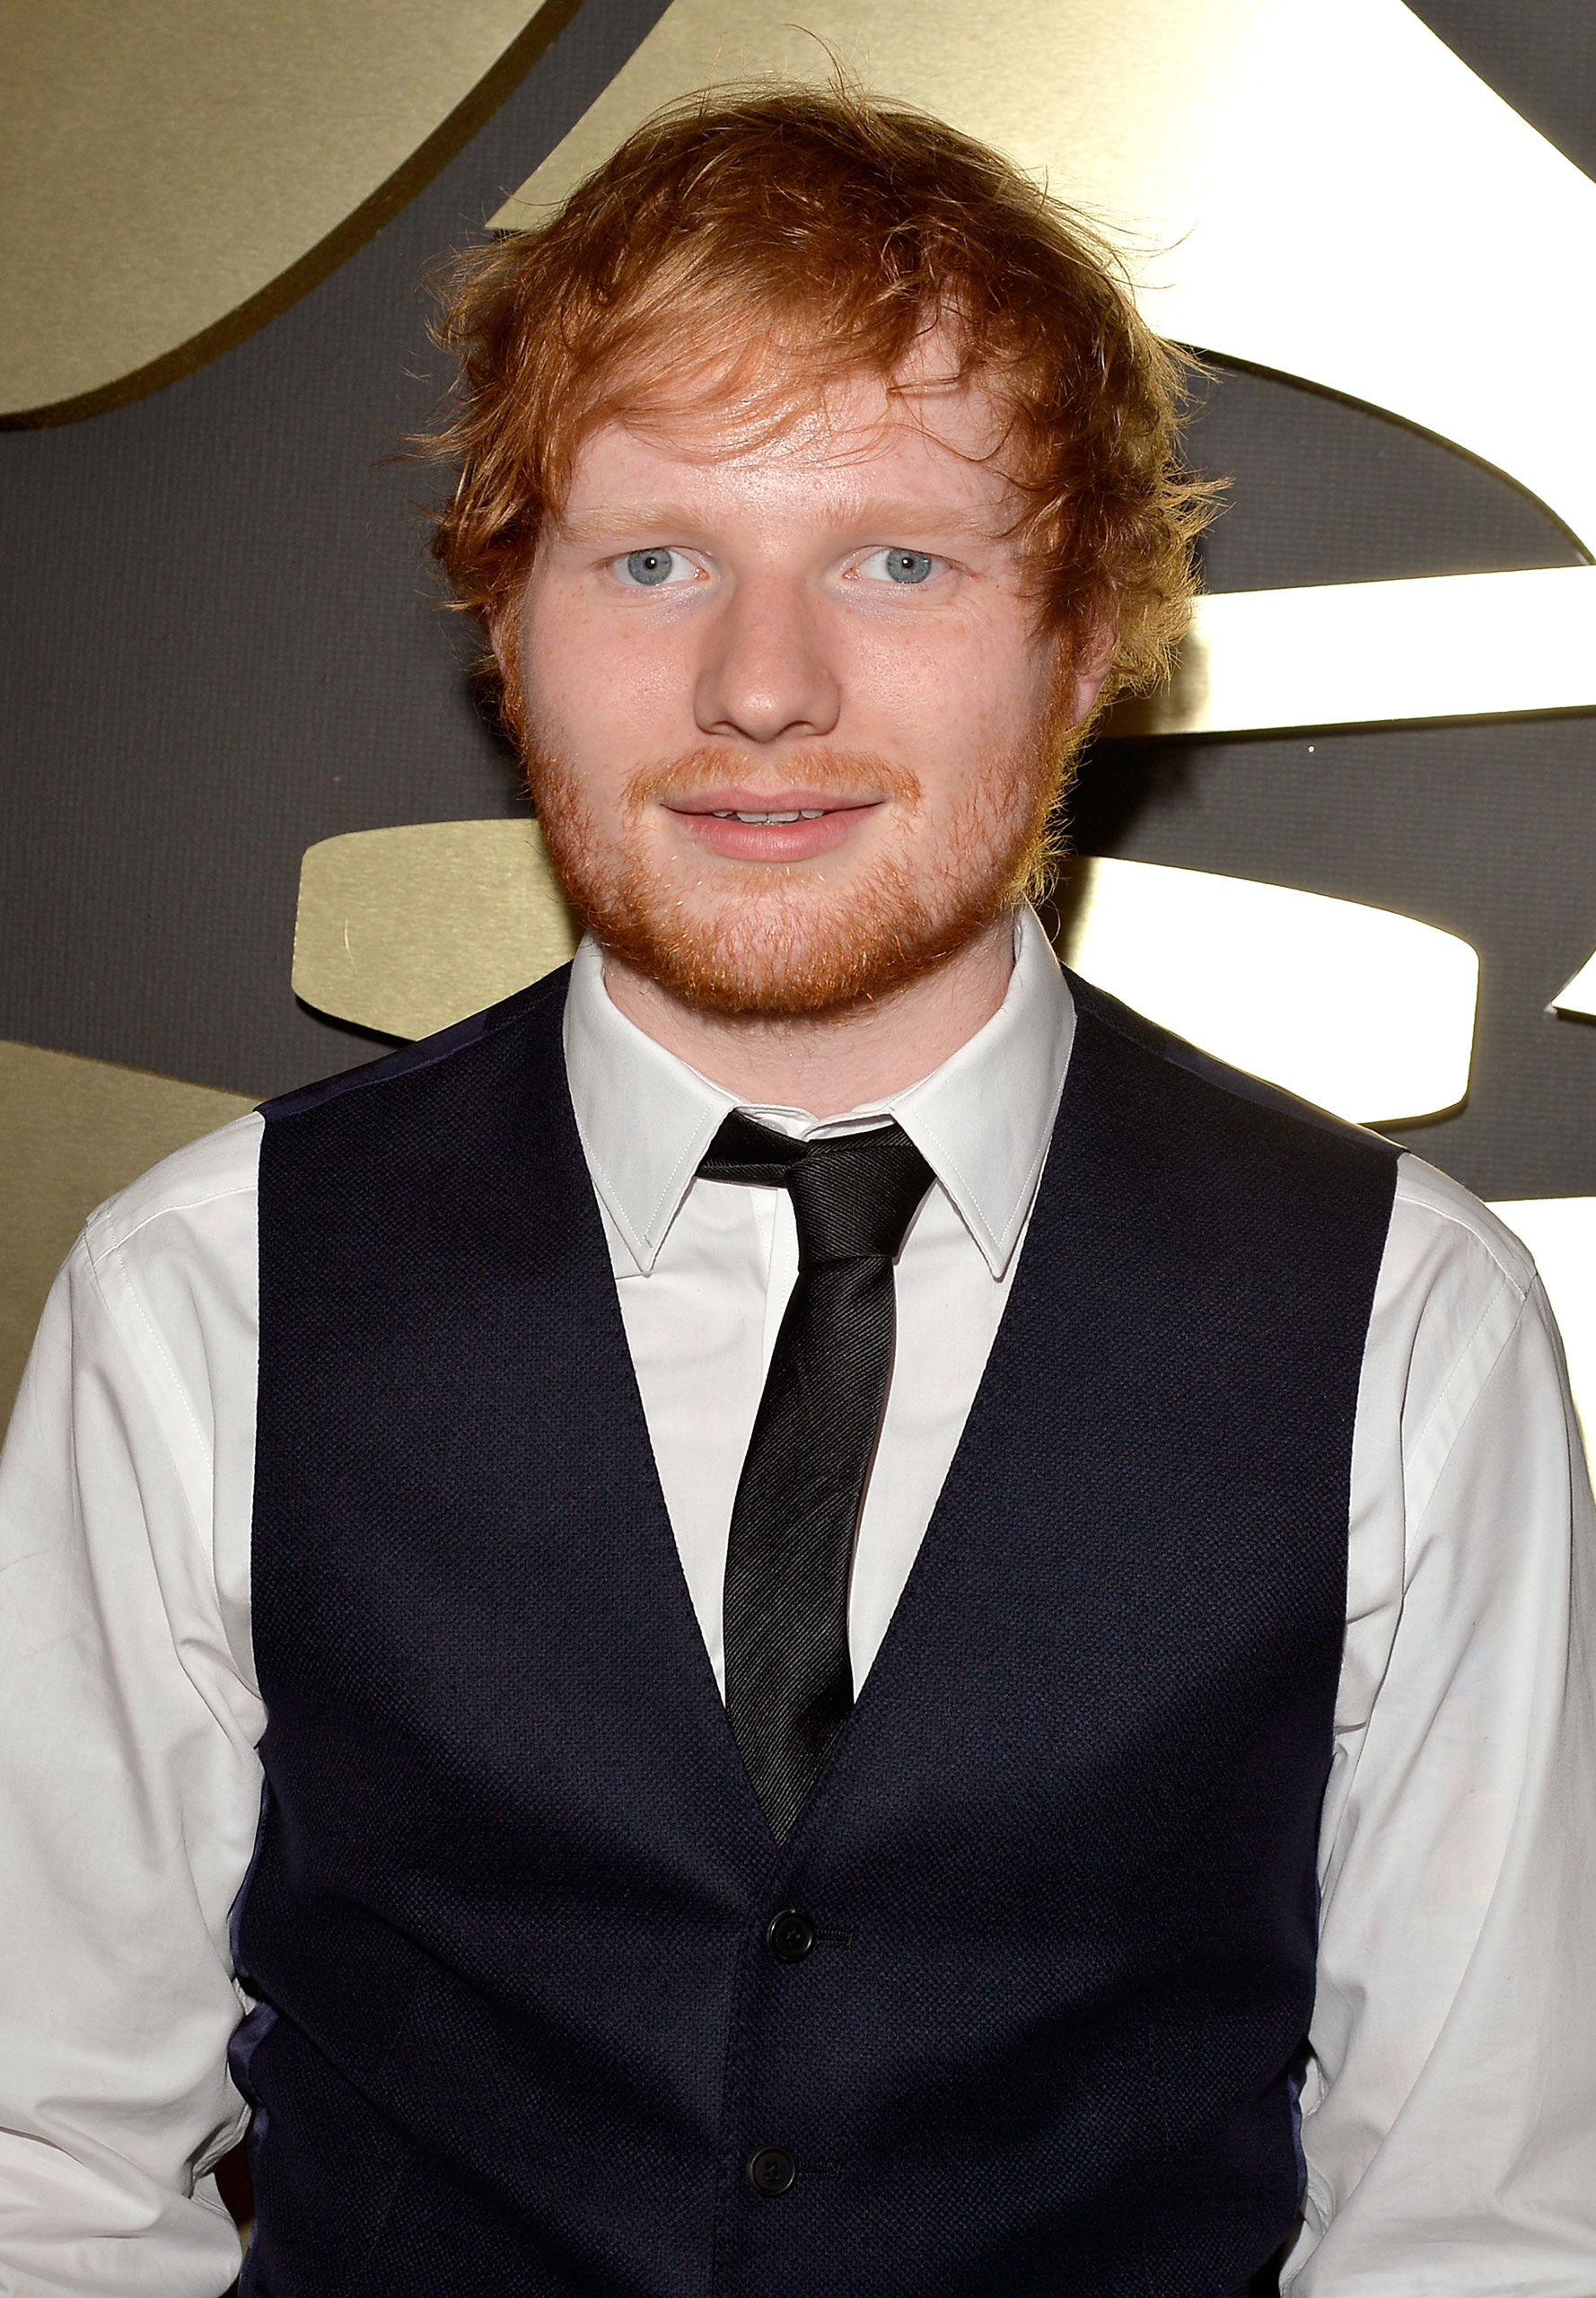 Ed Sheeran attends the 57th annual GRAMMY Awards at the STAPLES Center on February 8, 2015 in Los Angeles, California.